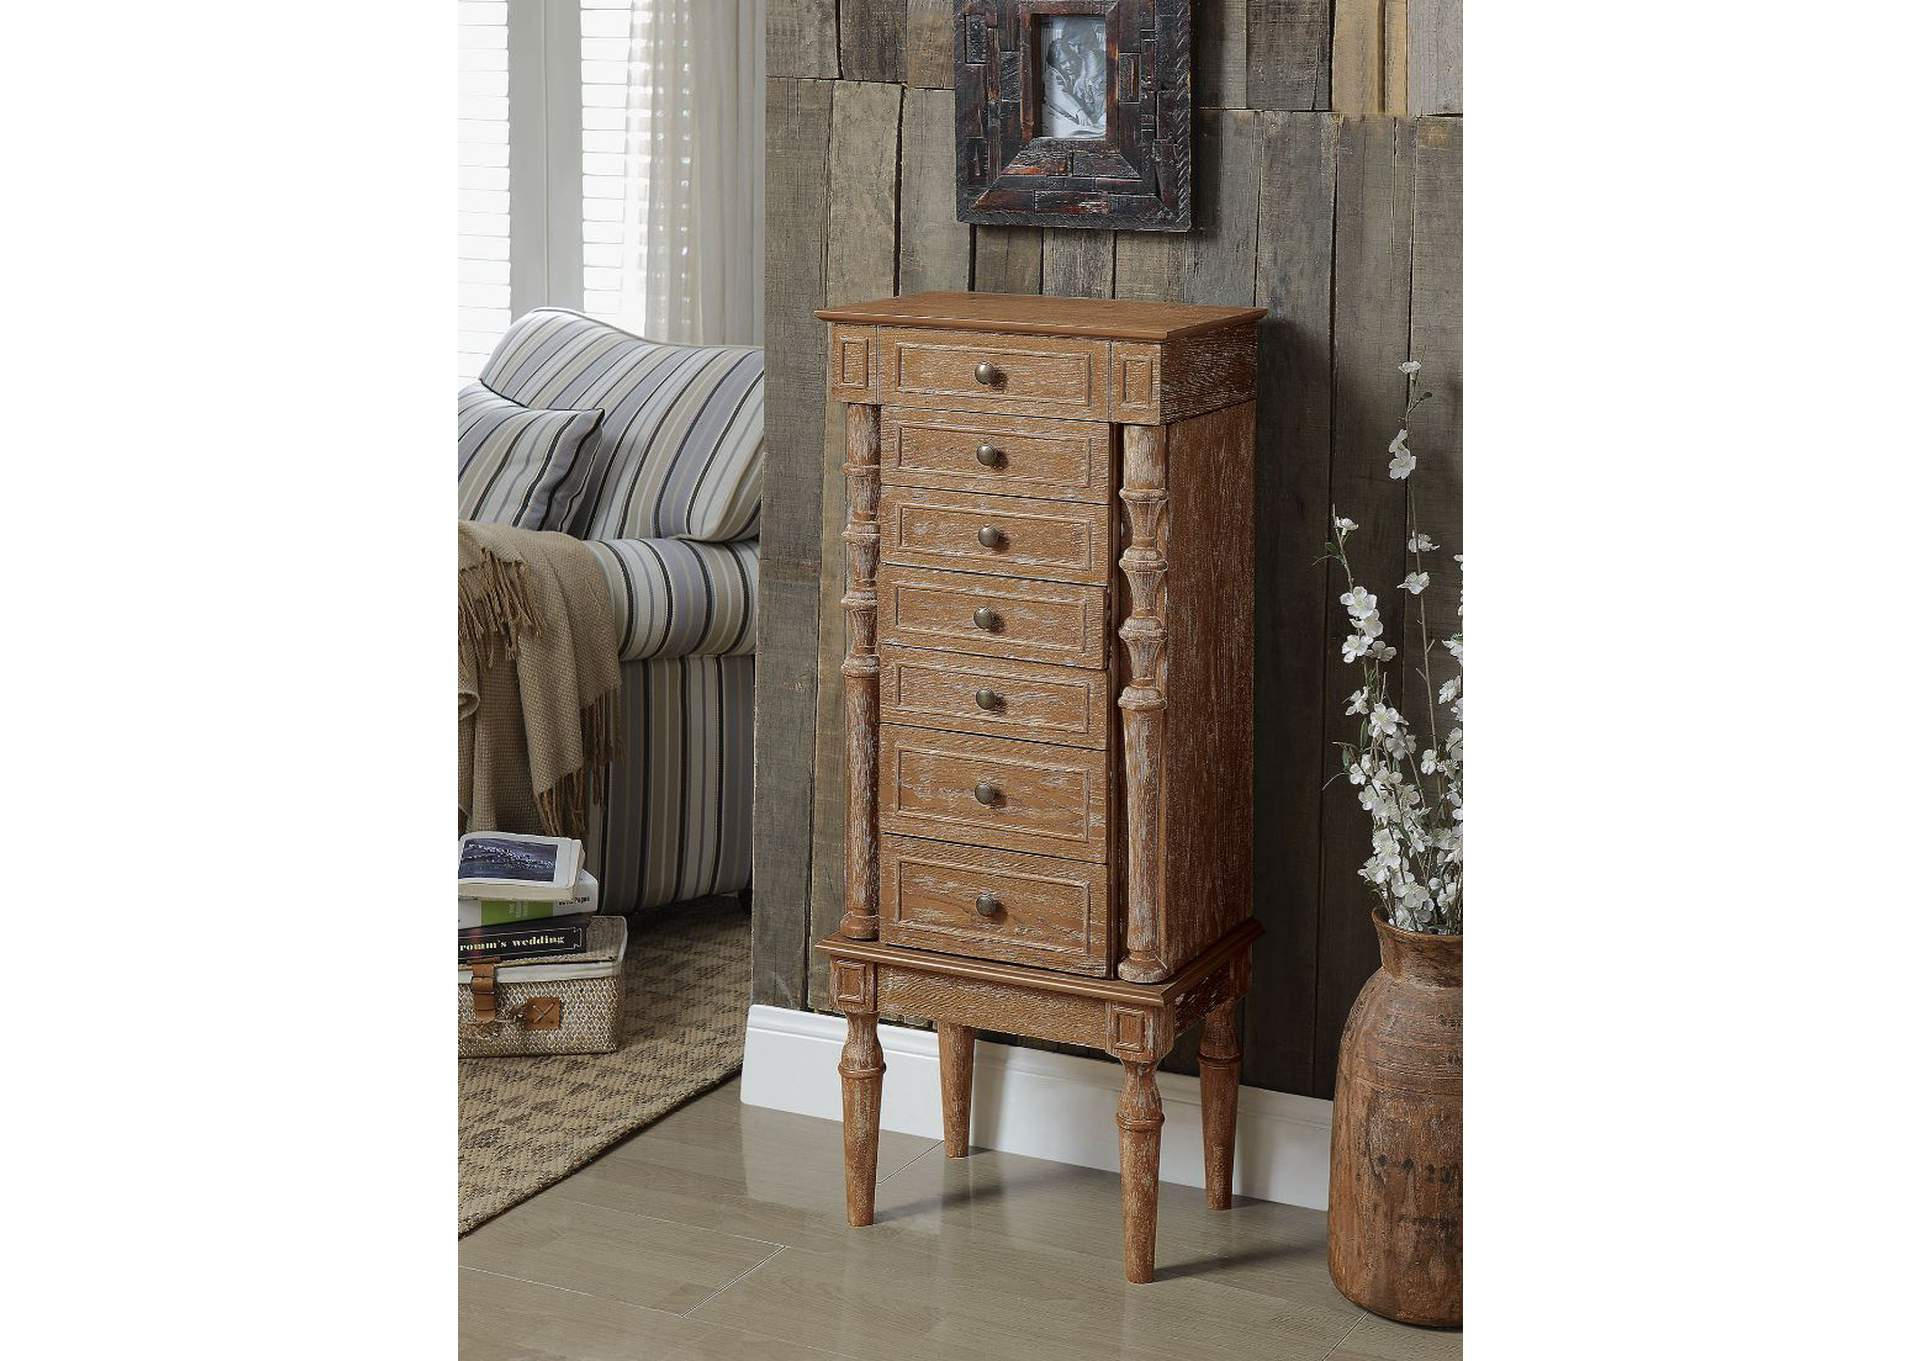 Taline Weathered Oak Jewelry Armoire,Acme